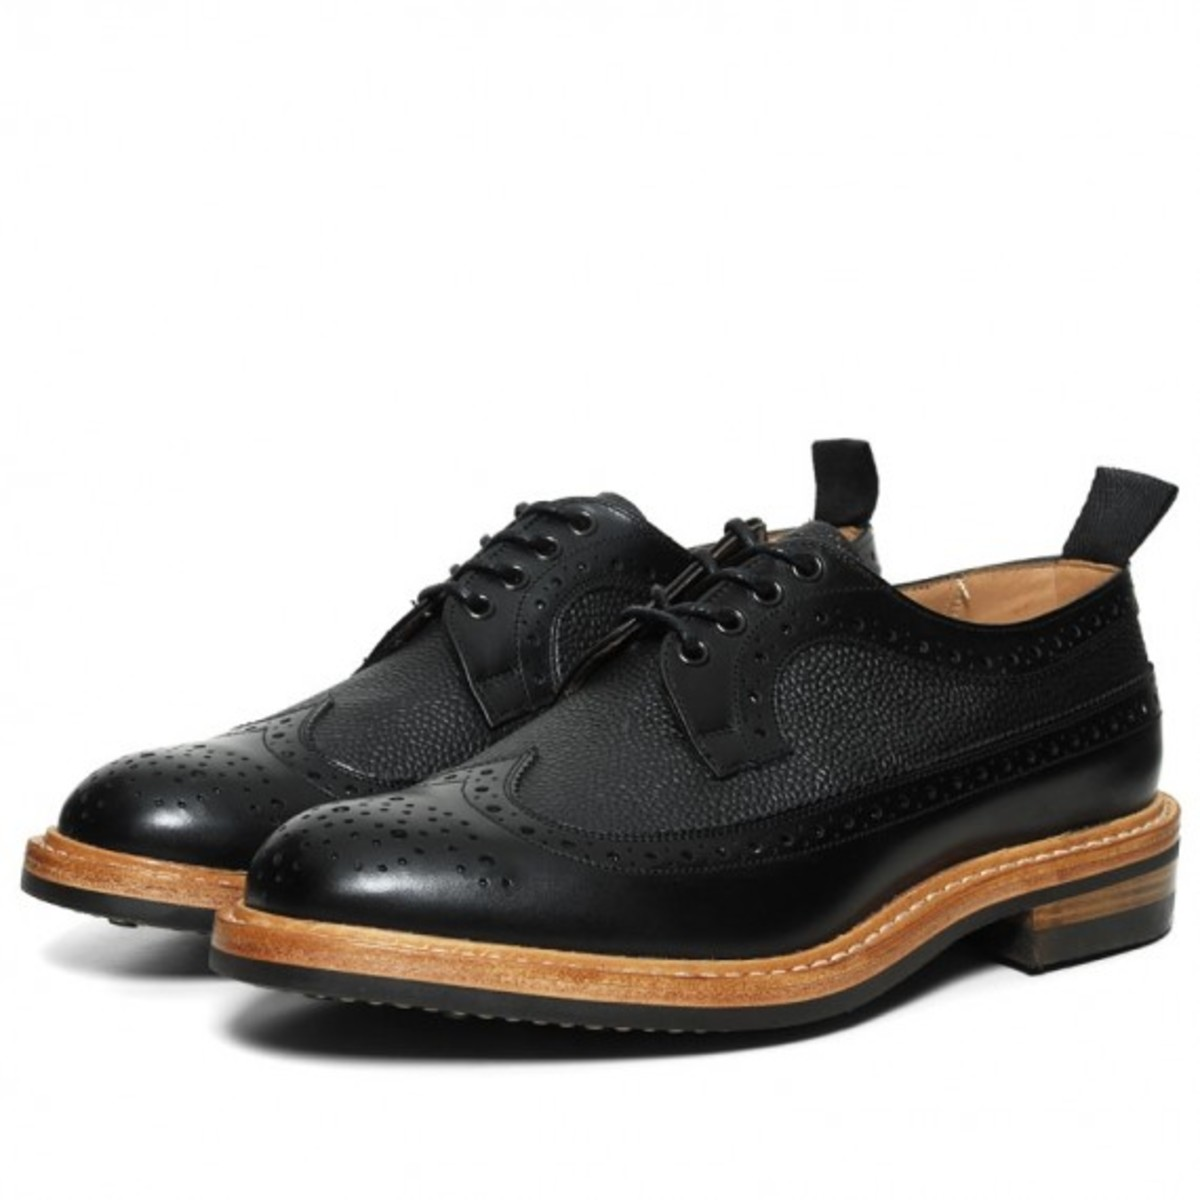 two-tone-long-wing-brogue-01